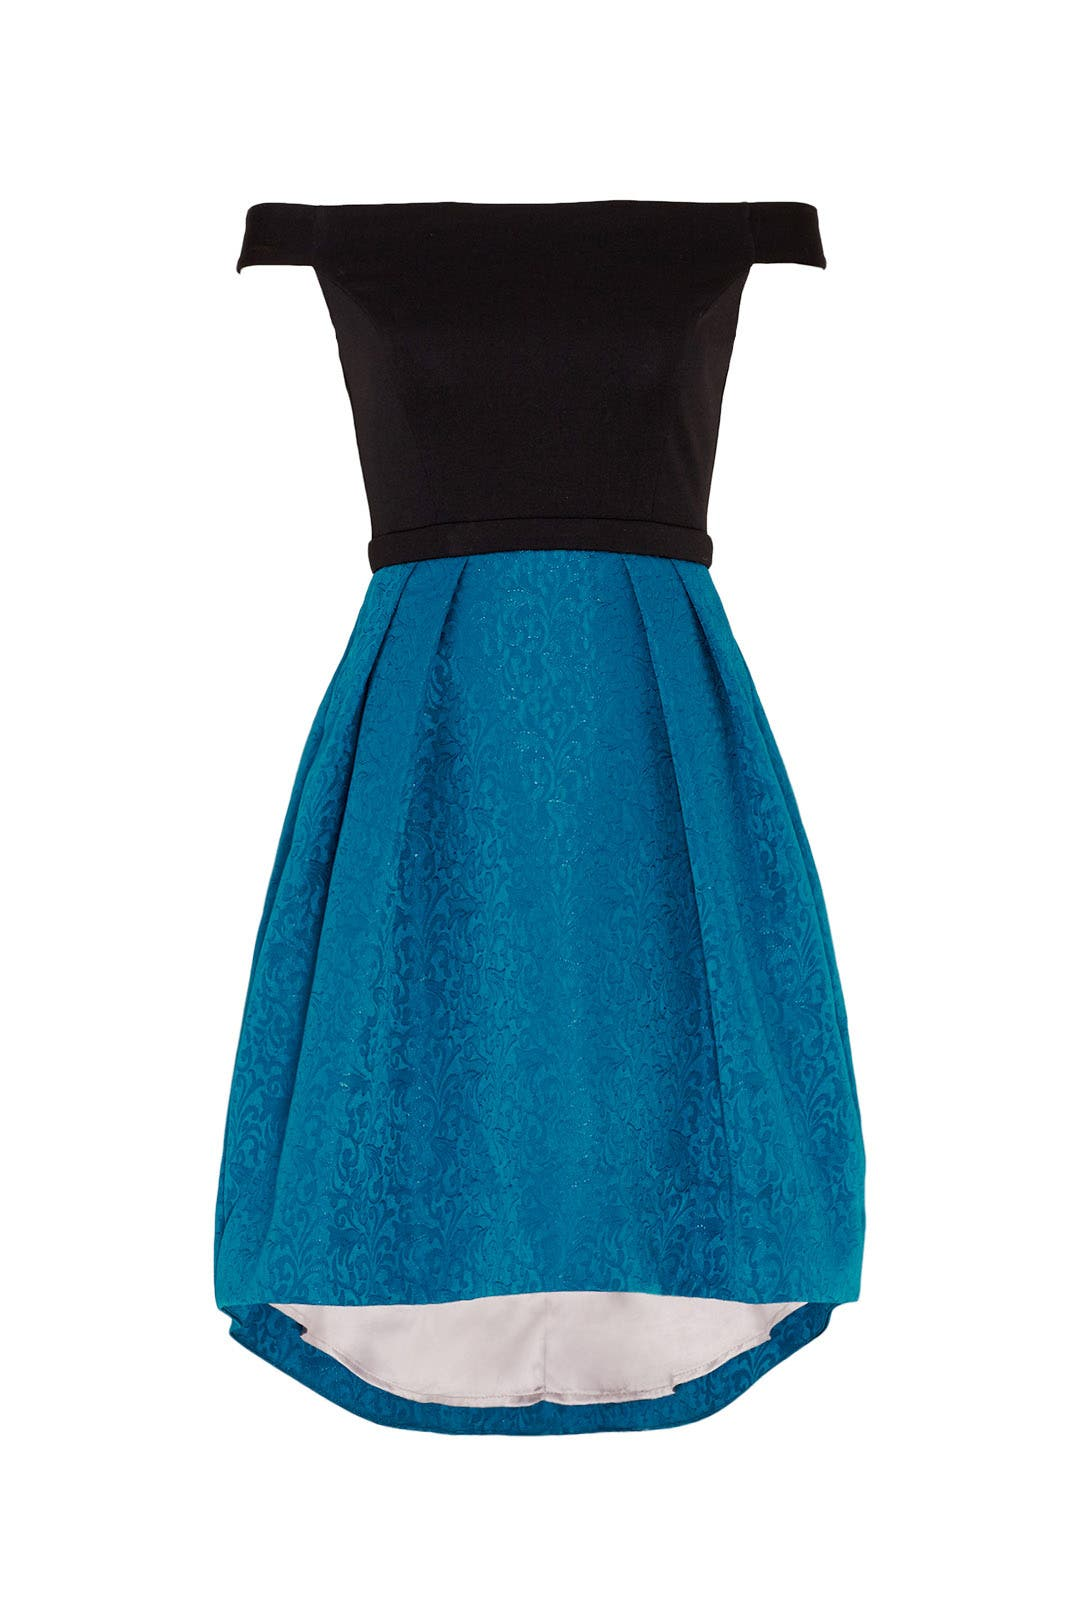 Colorblock Jennifer Dress by Slate & Willow for $30 - $50 | Rent the ...